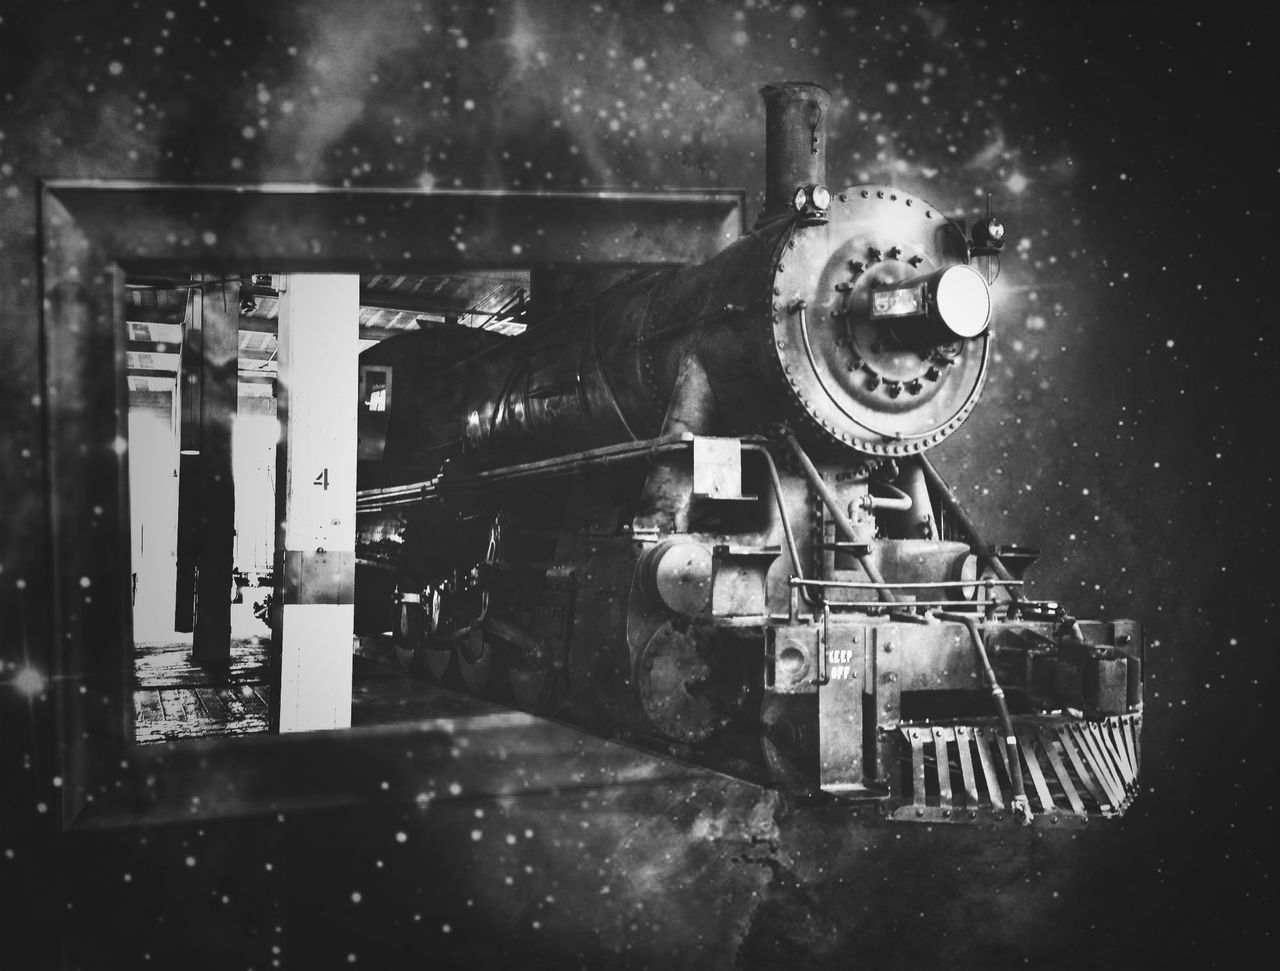 no people, old-fashioned, locomotive, night, steam train, outdoors, close-up, film industry